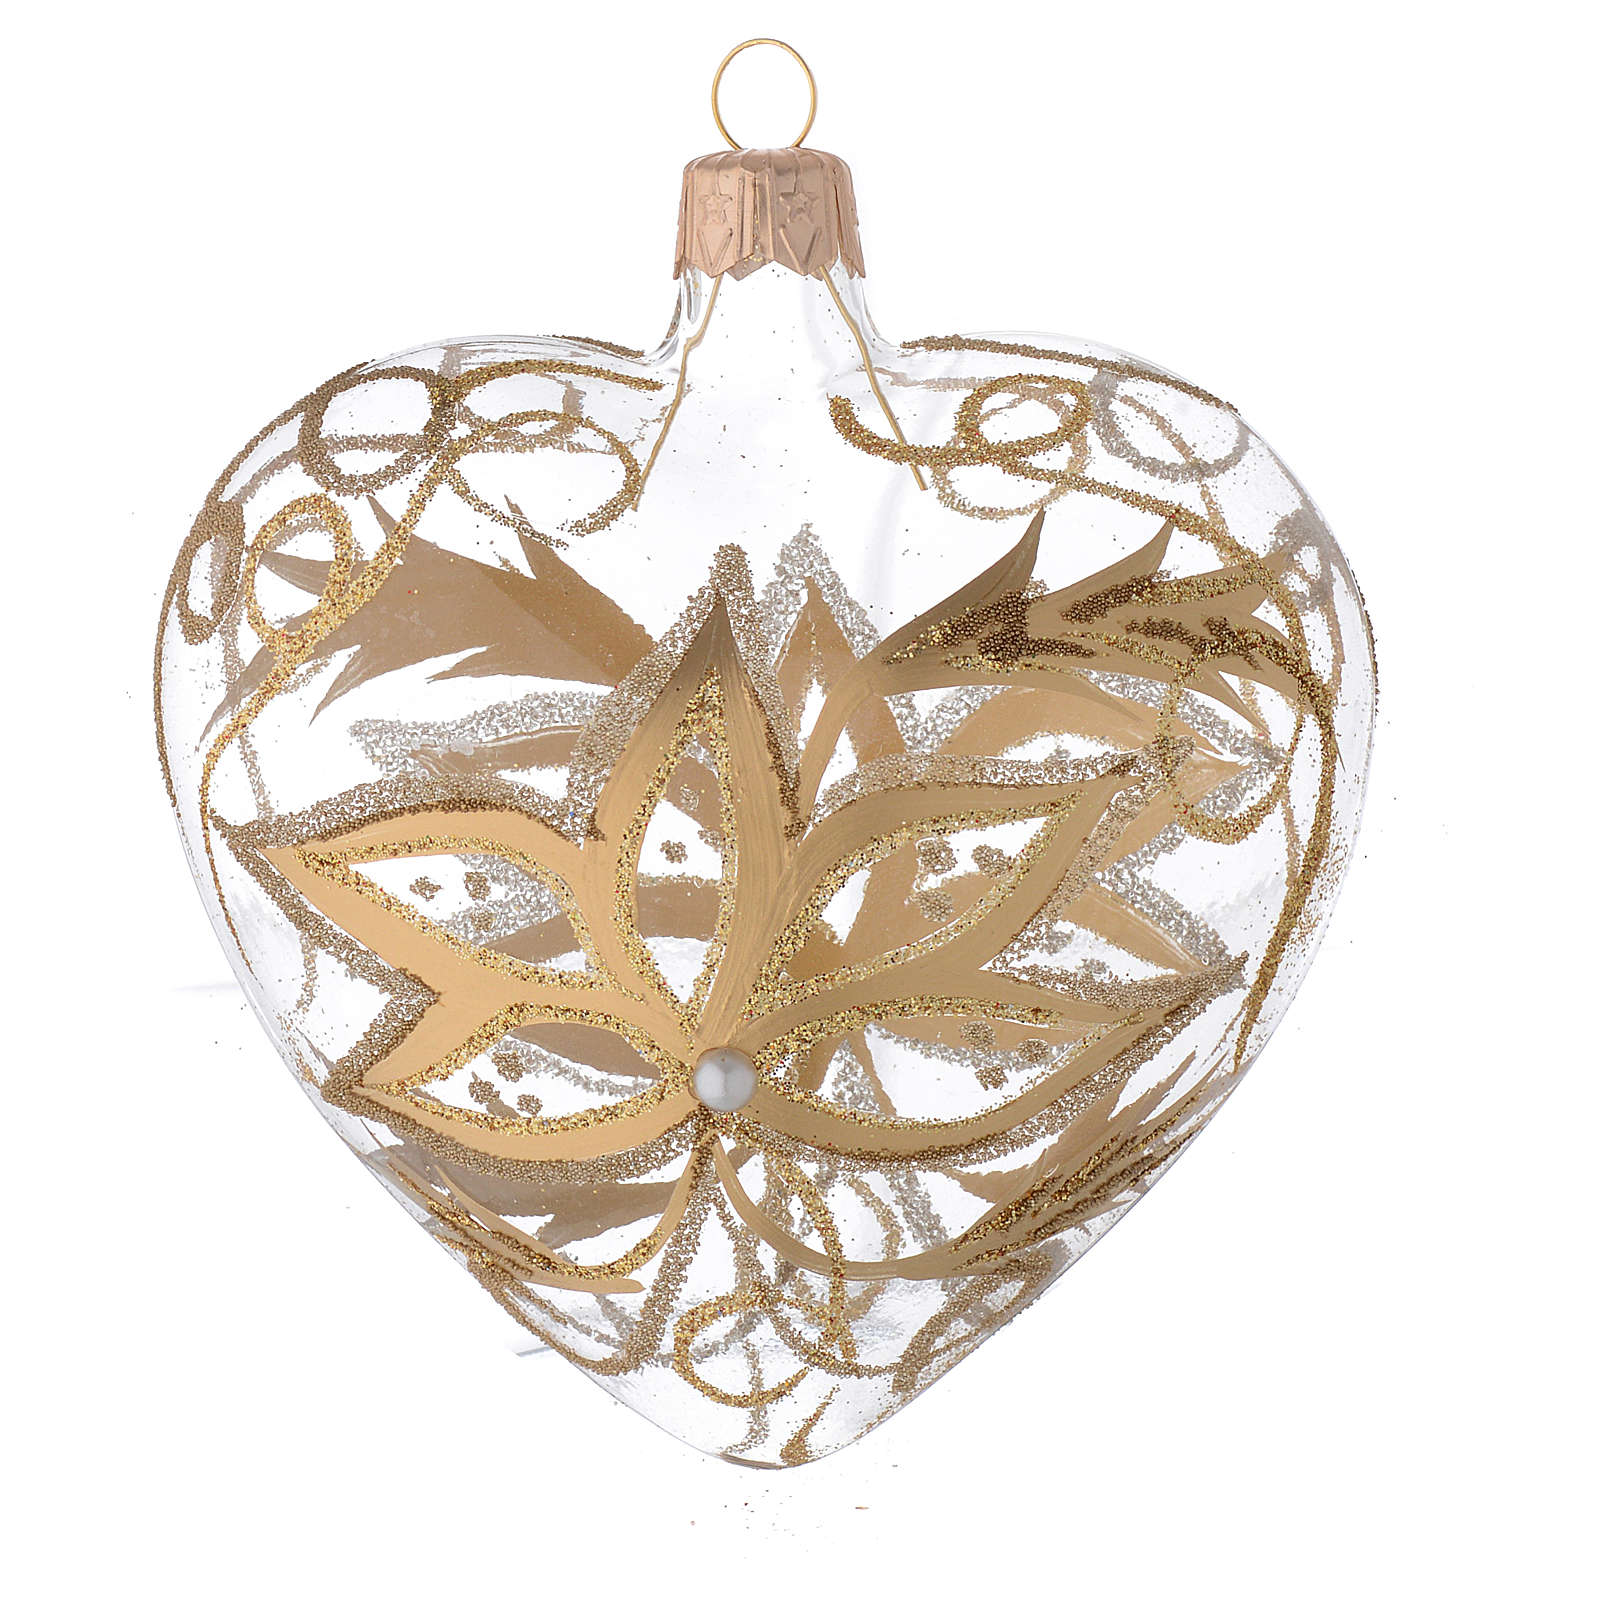 Heart Shaped Bauble in blown glass with gold flower 100mm 4